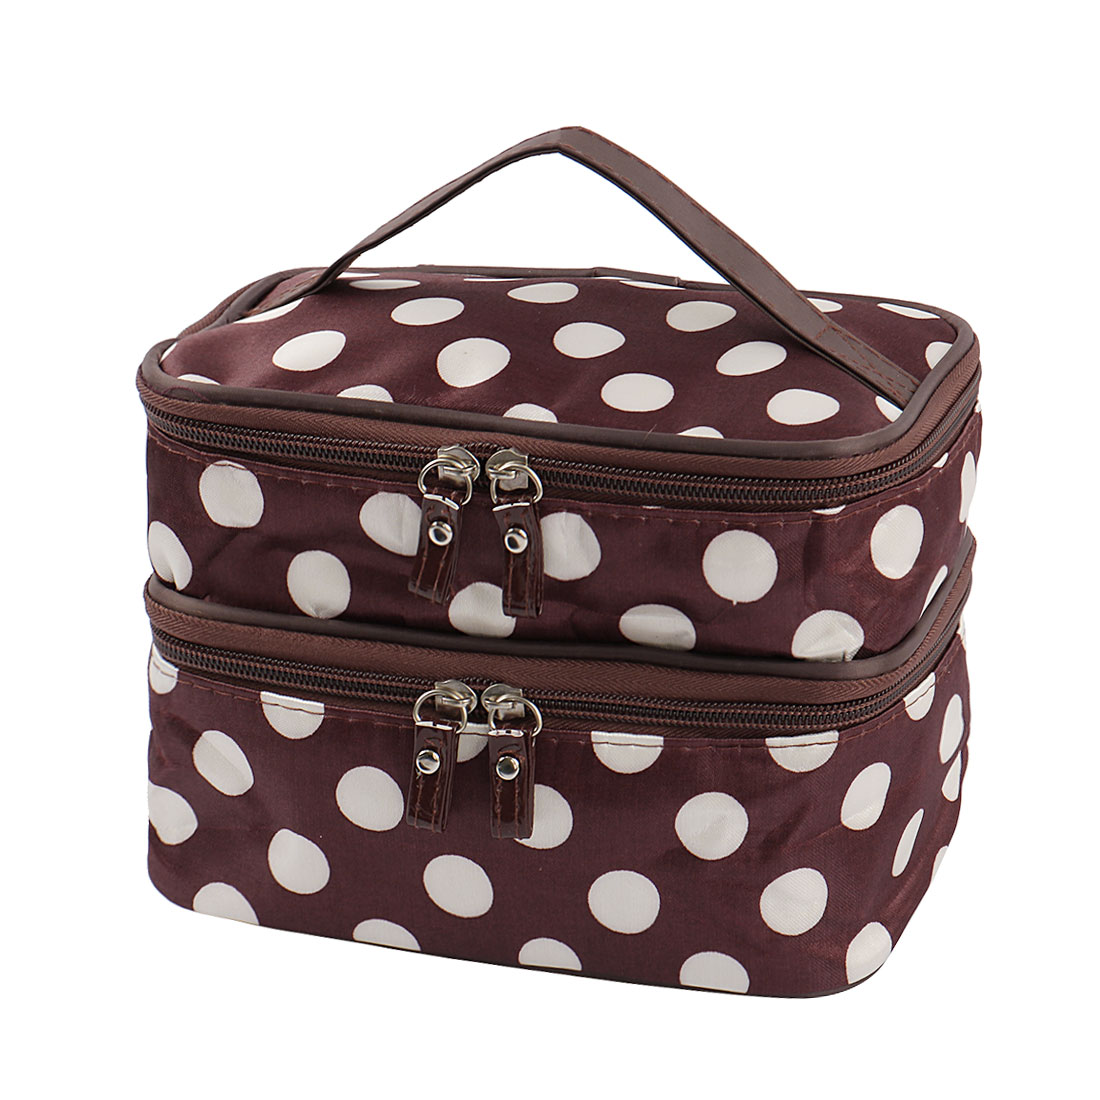 707e847ff761 Travel Cosmetic Makeup Bag Organizer Double Layer Dot Pattern Toiletry Bag  Case Pouch With Mirror For Woman - Walmart.com